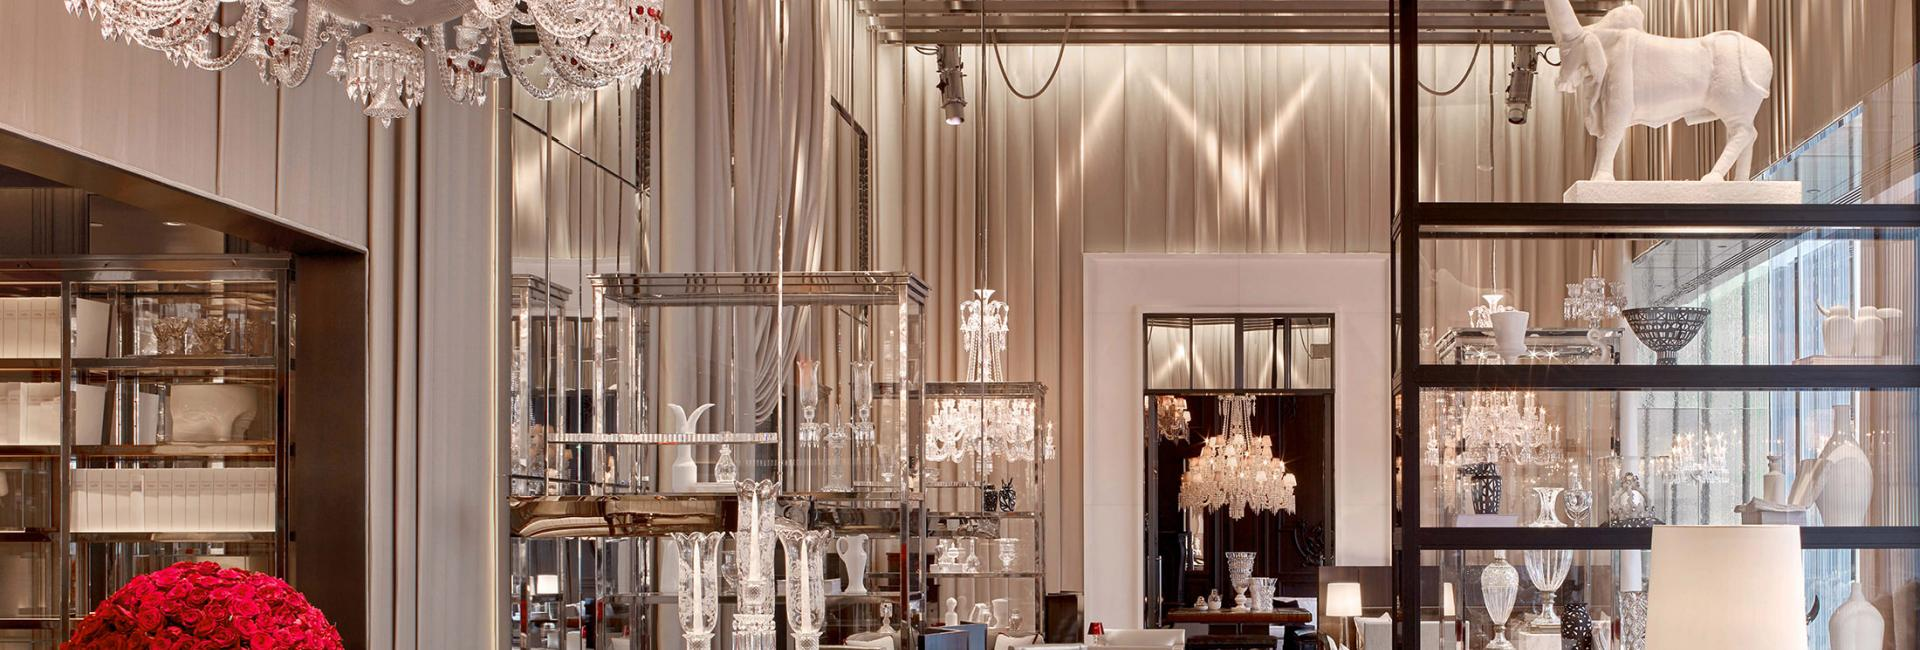 grand salon at baccarat hotel